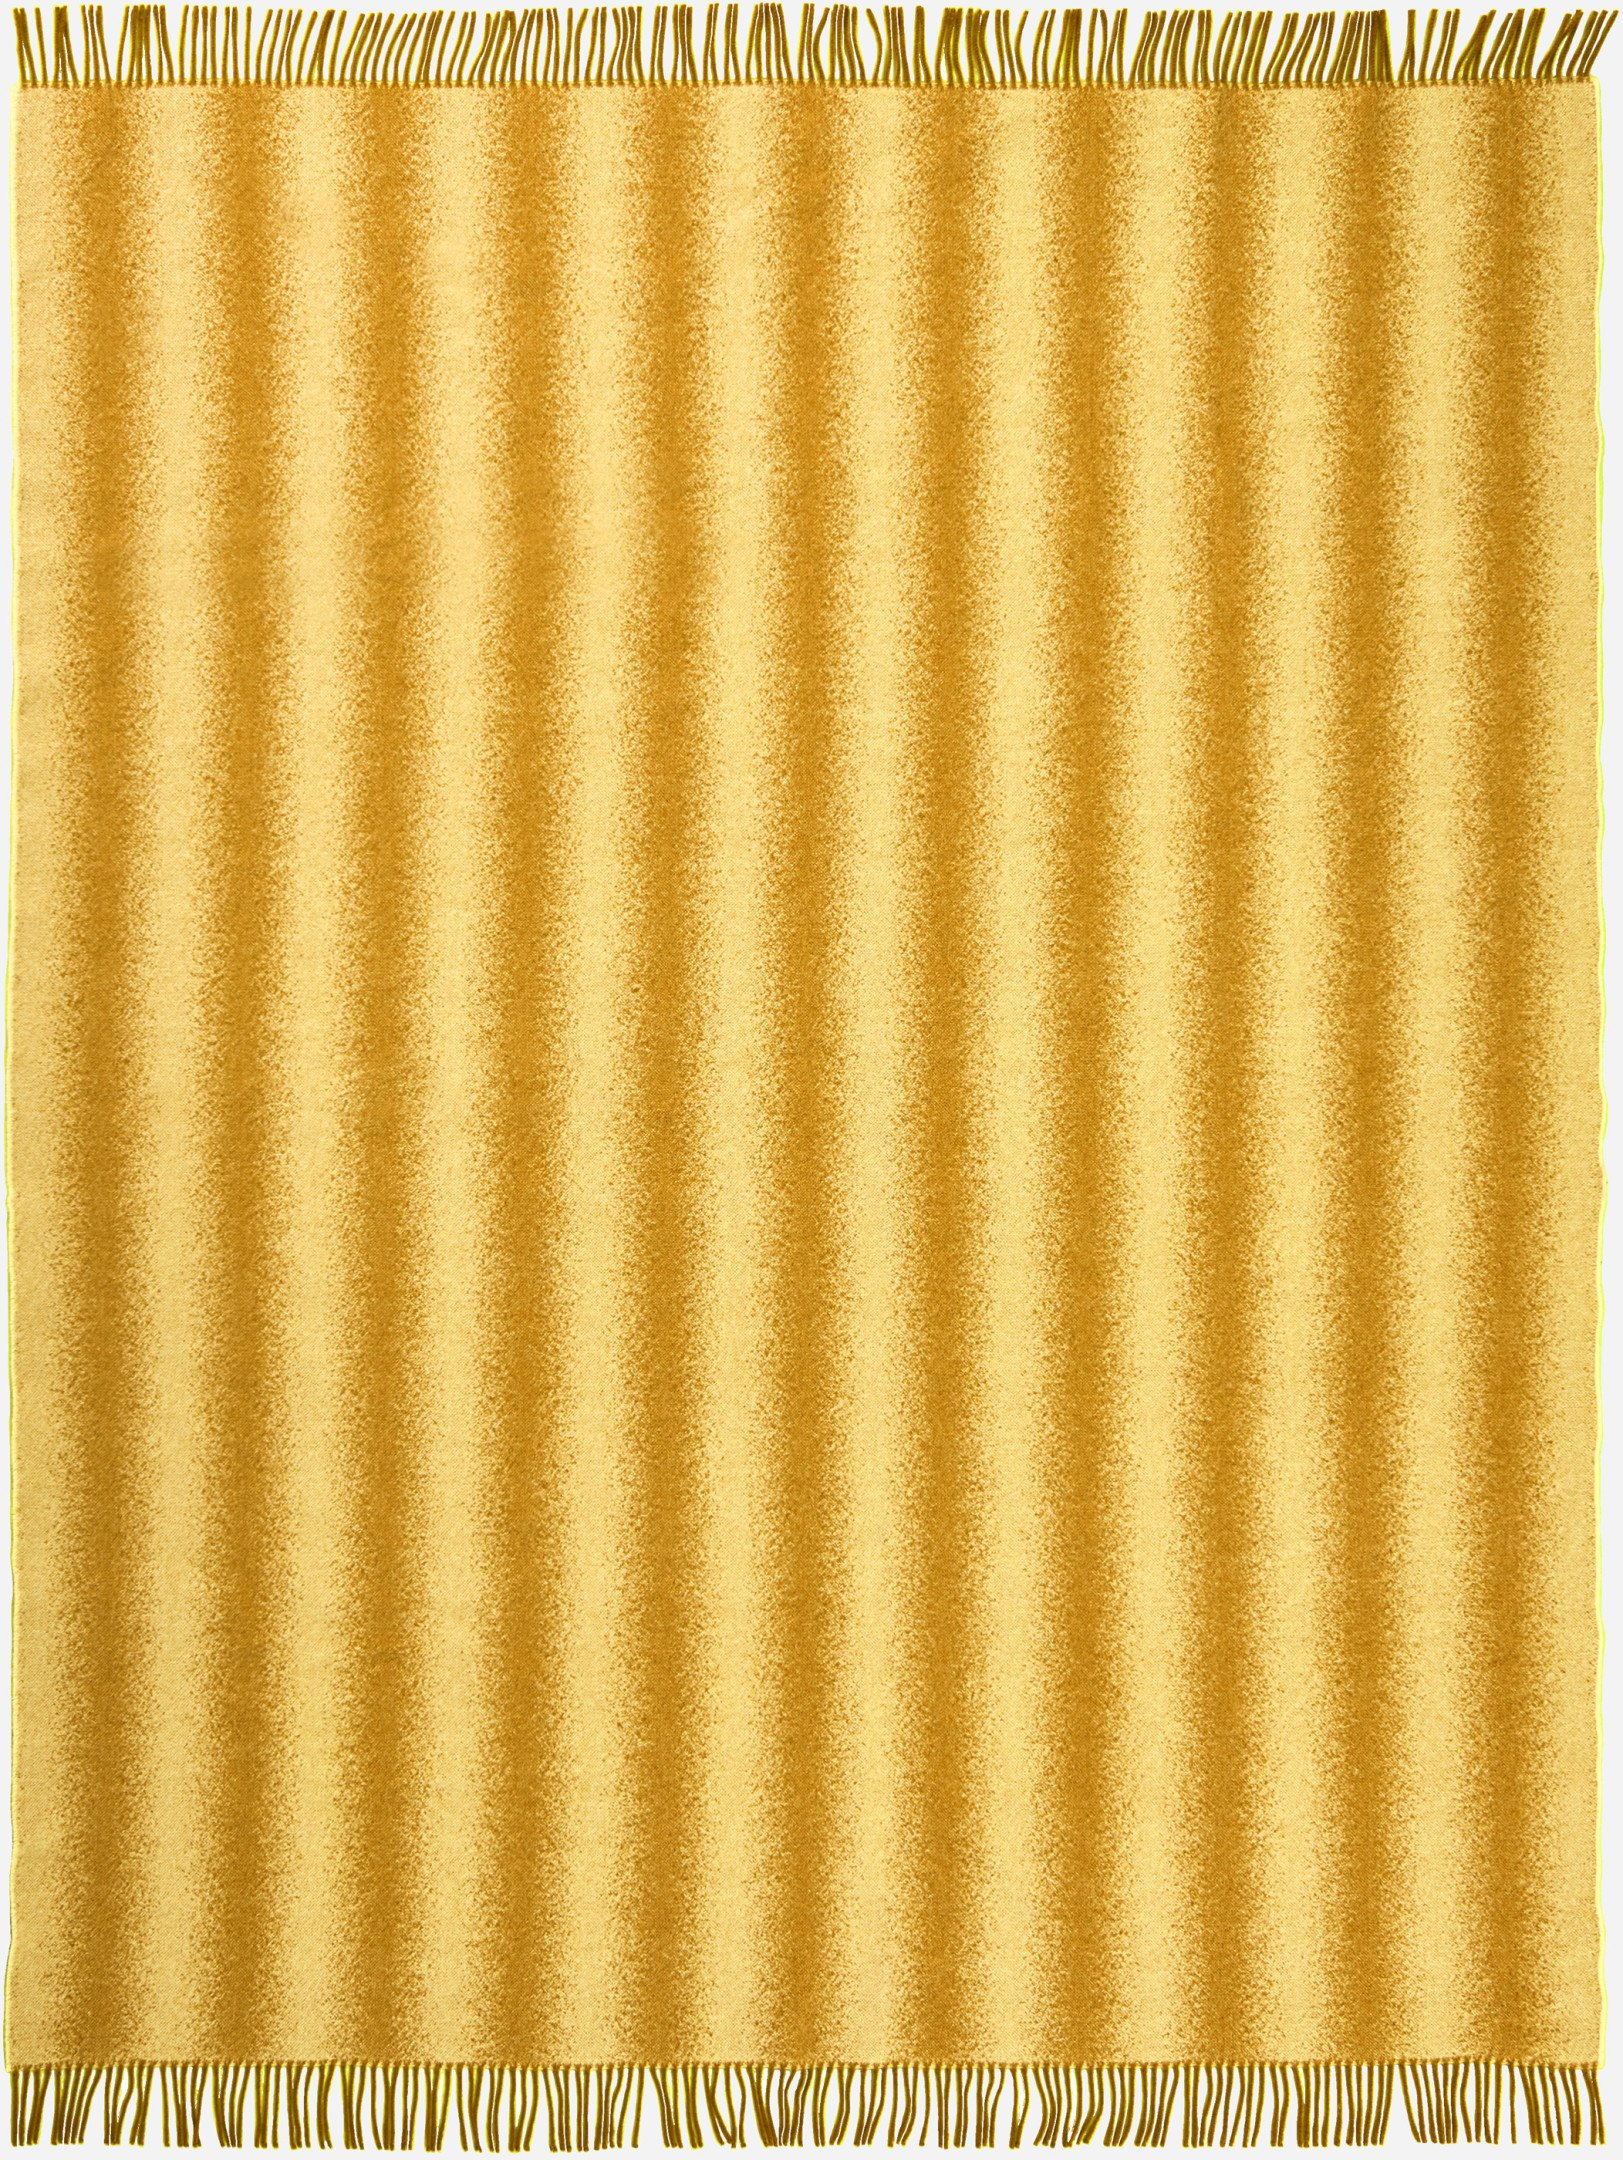 Tide Blanket Yellow by J. Jessen for Schneid